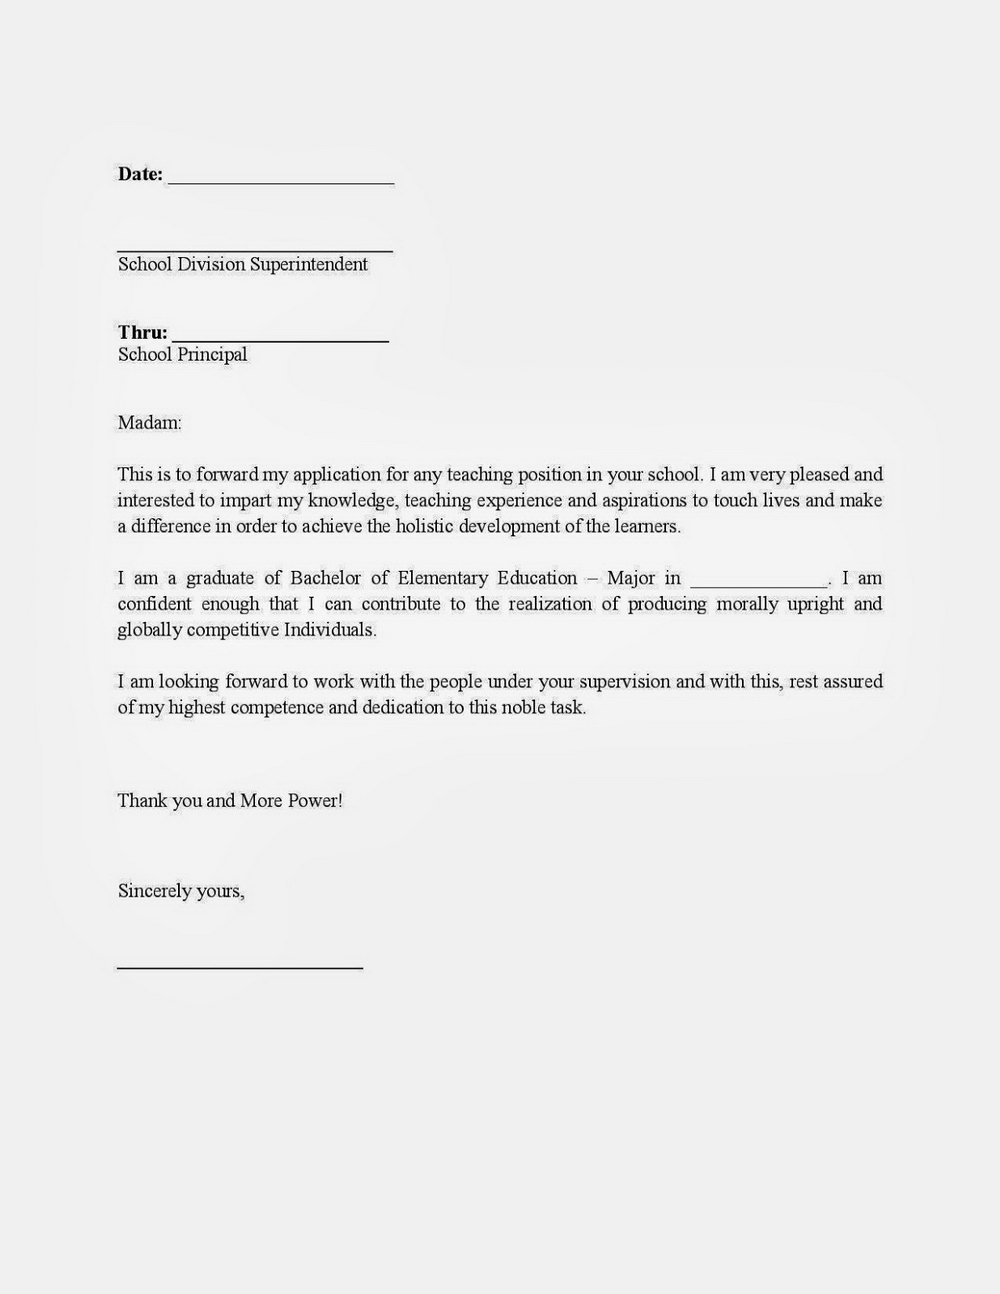 How To Write Application Letter For Job Vacancy Pdf